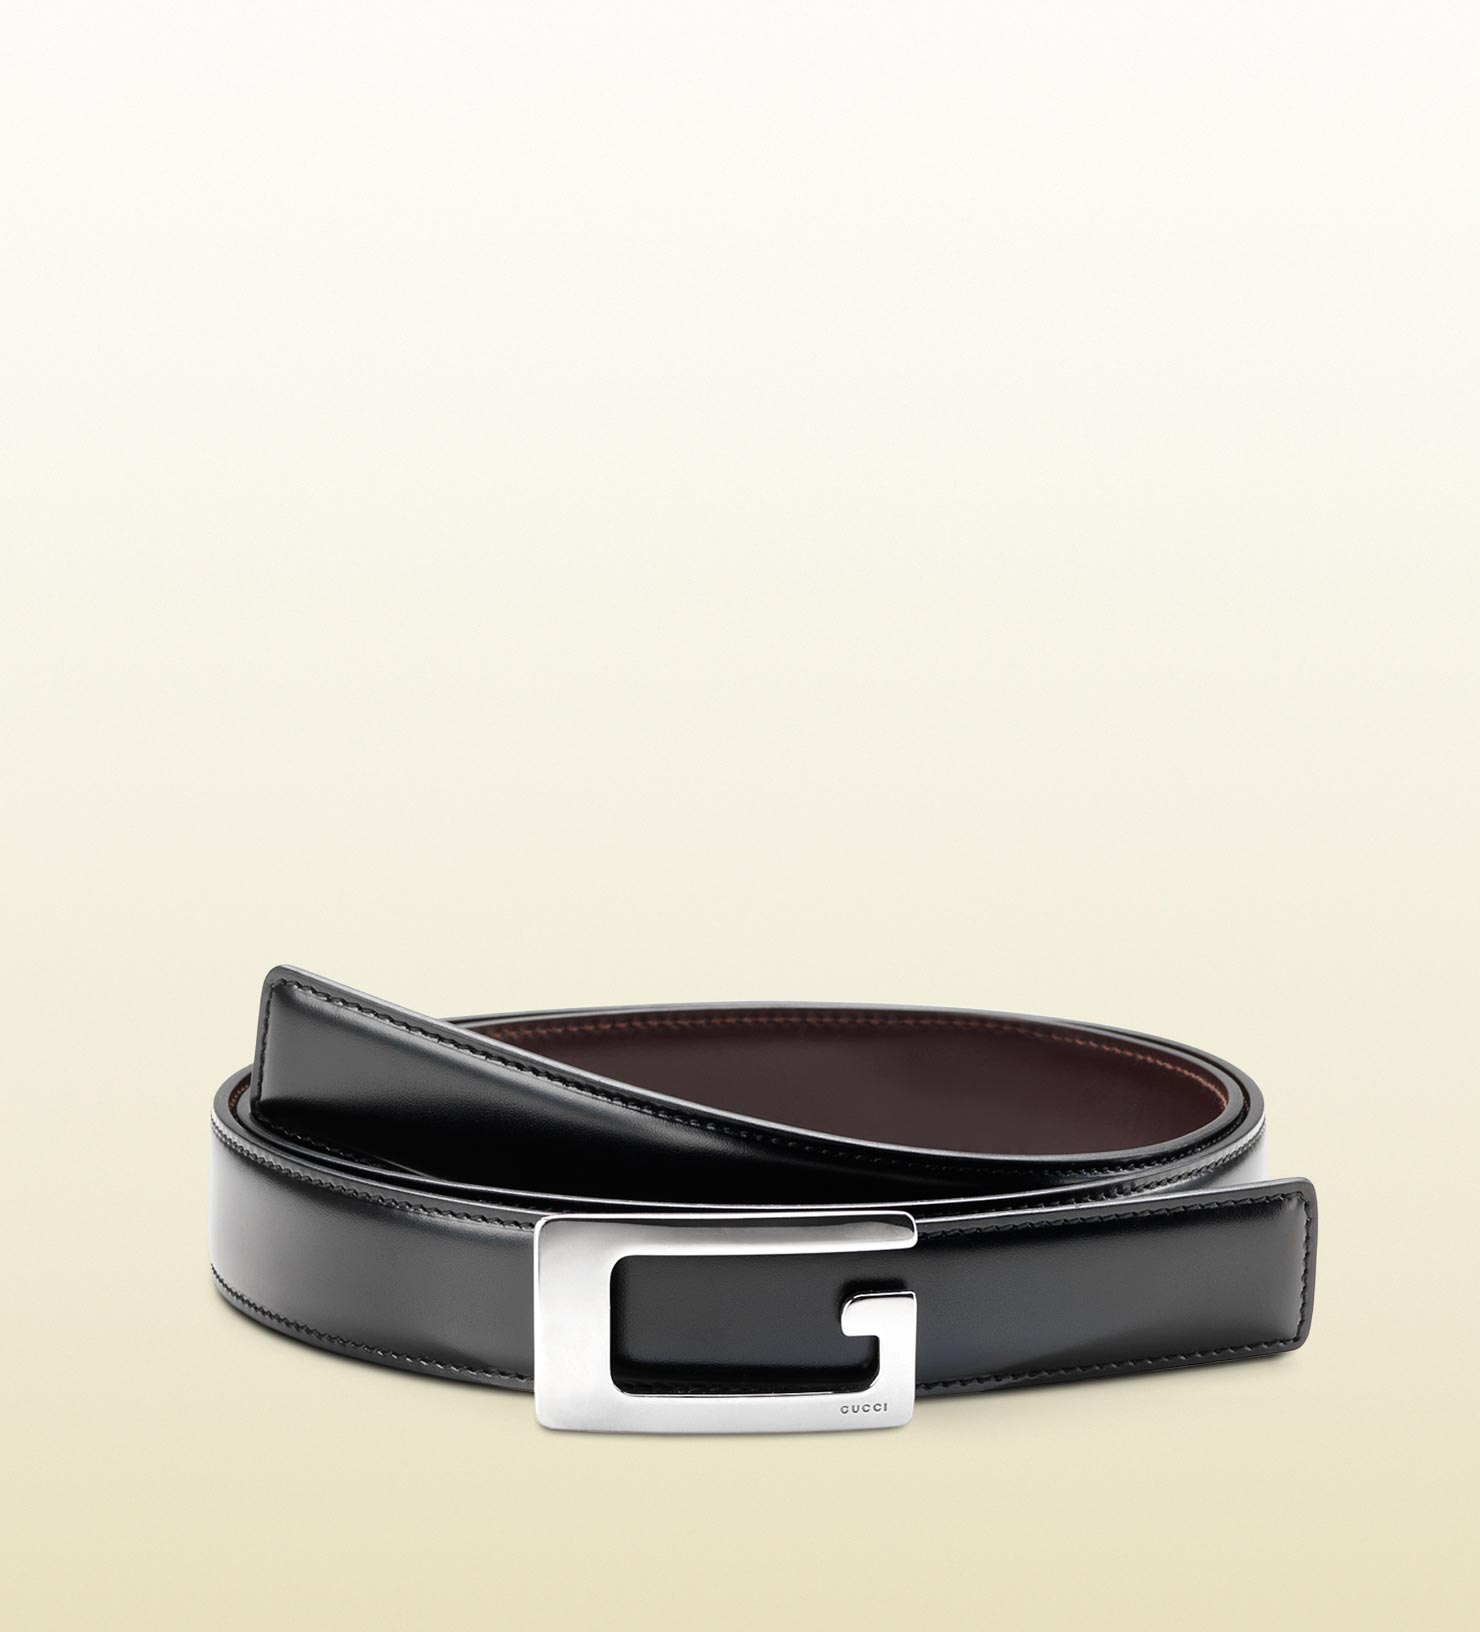 859bb6e40ba0dc Gucci Reversible Leather Belt With Rectangular G Buckle In Black For